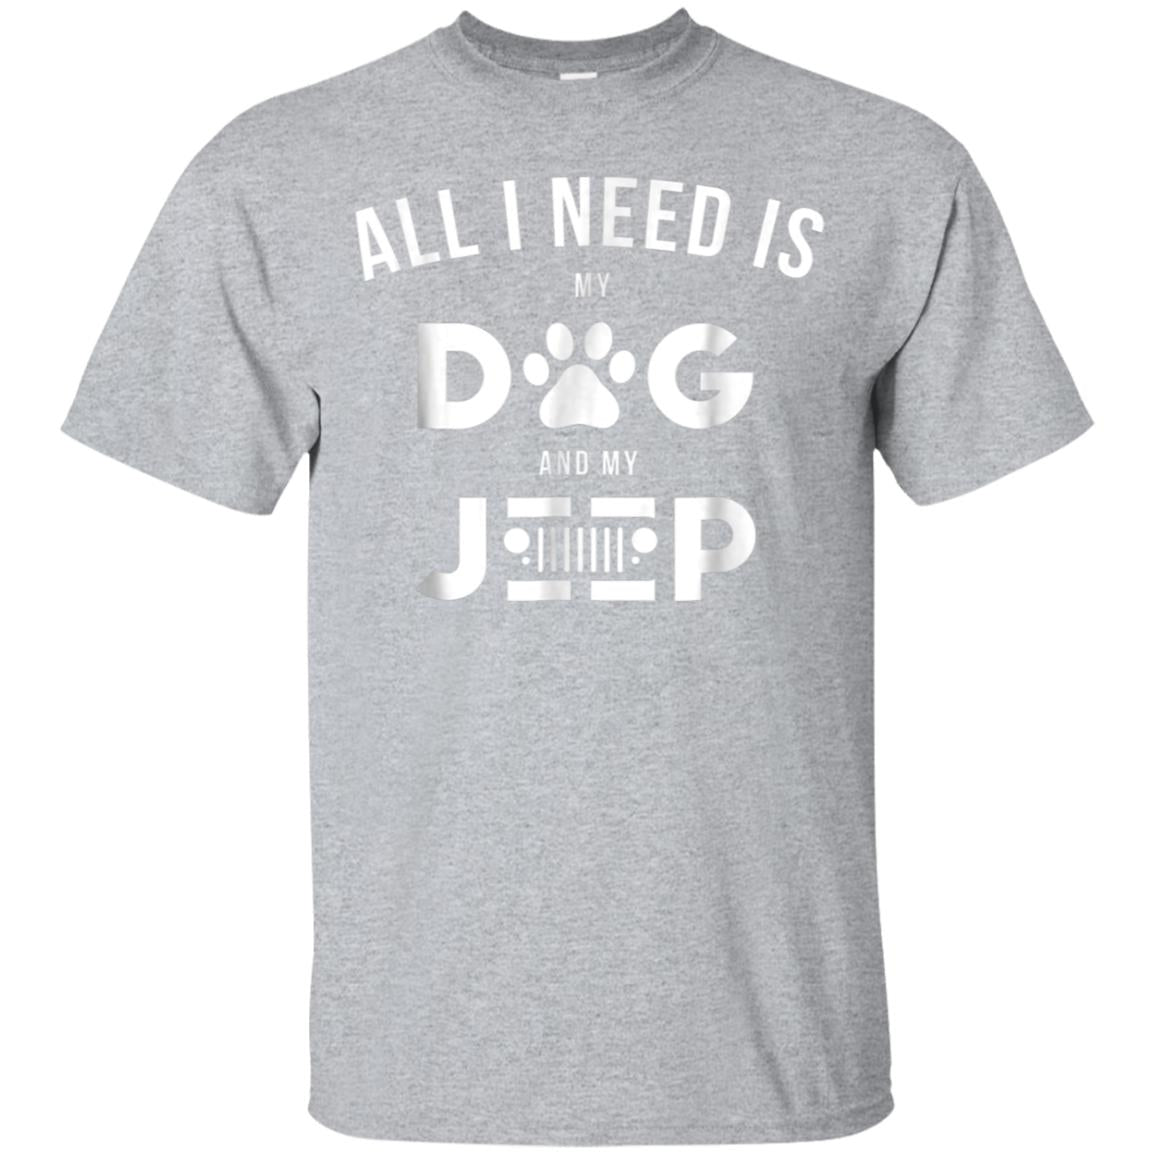 All i need is my dog and my jeeps T Shirt Funny 99promocode